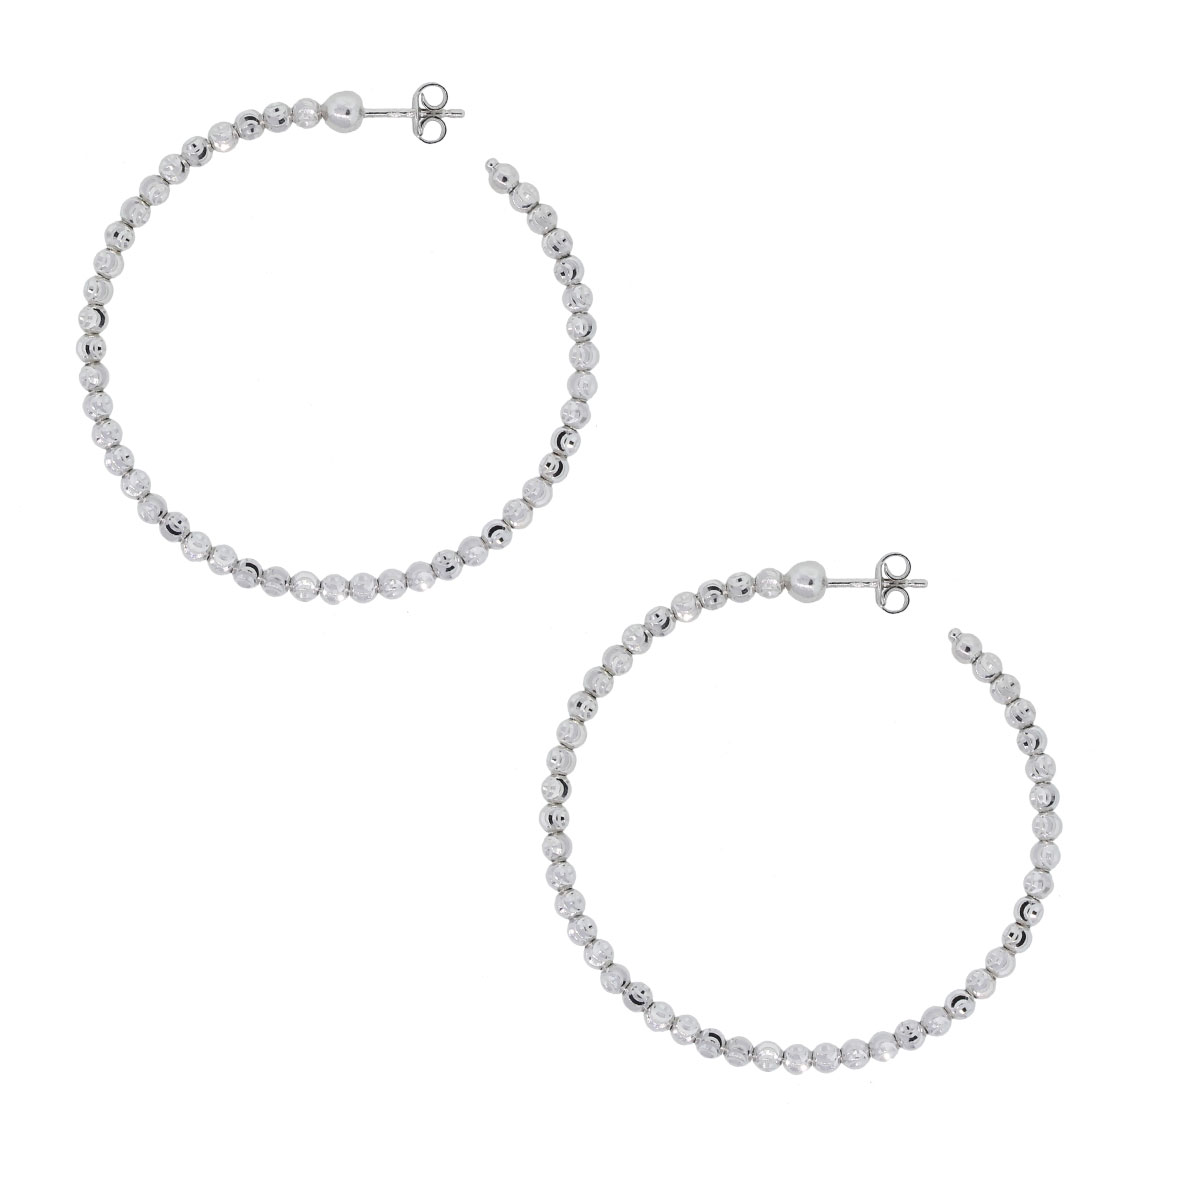 Officina Bernardi SS & Platinum Rodium Hoop Earrings